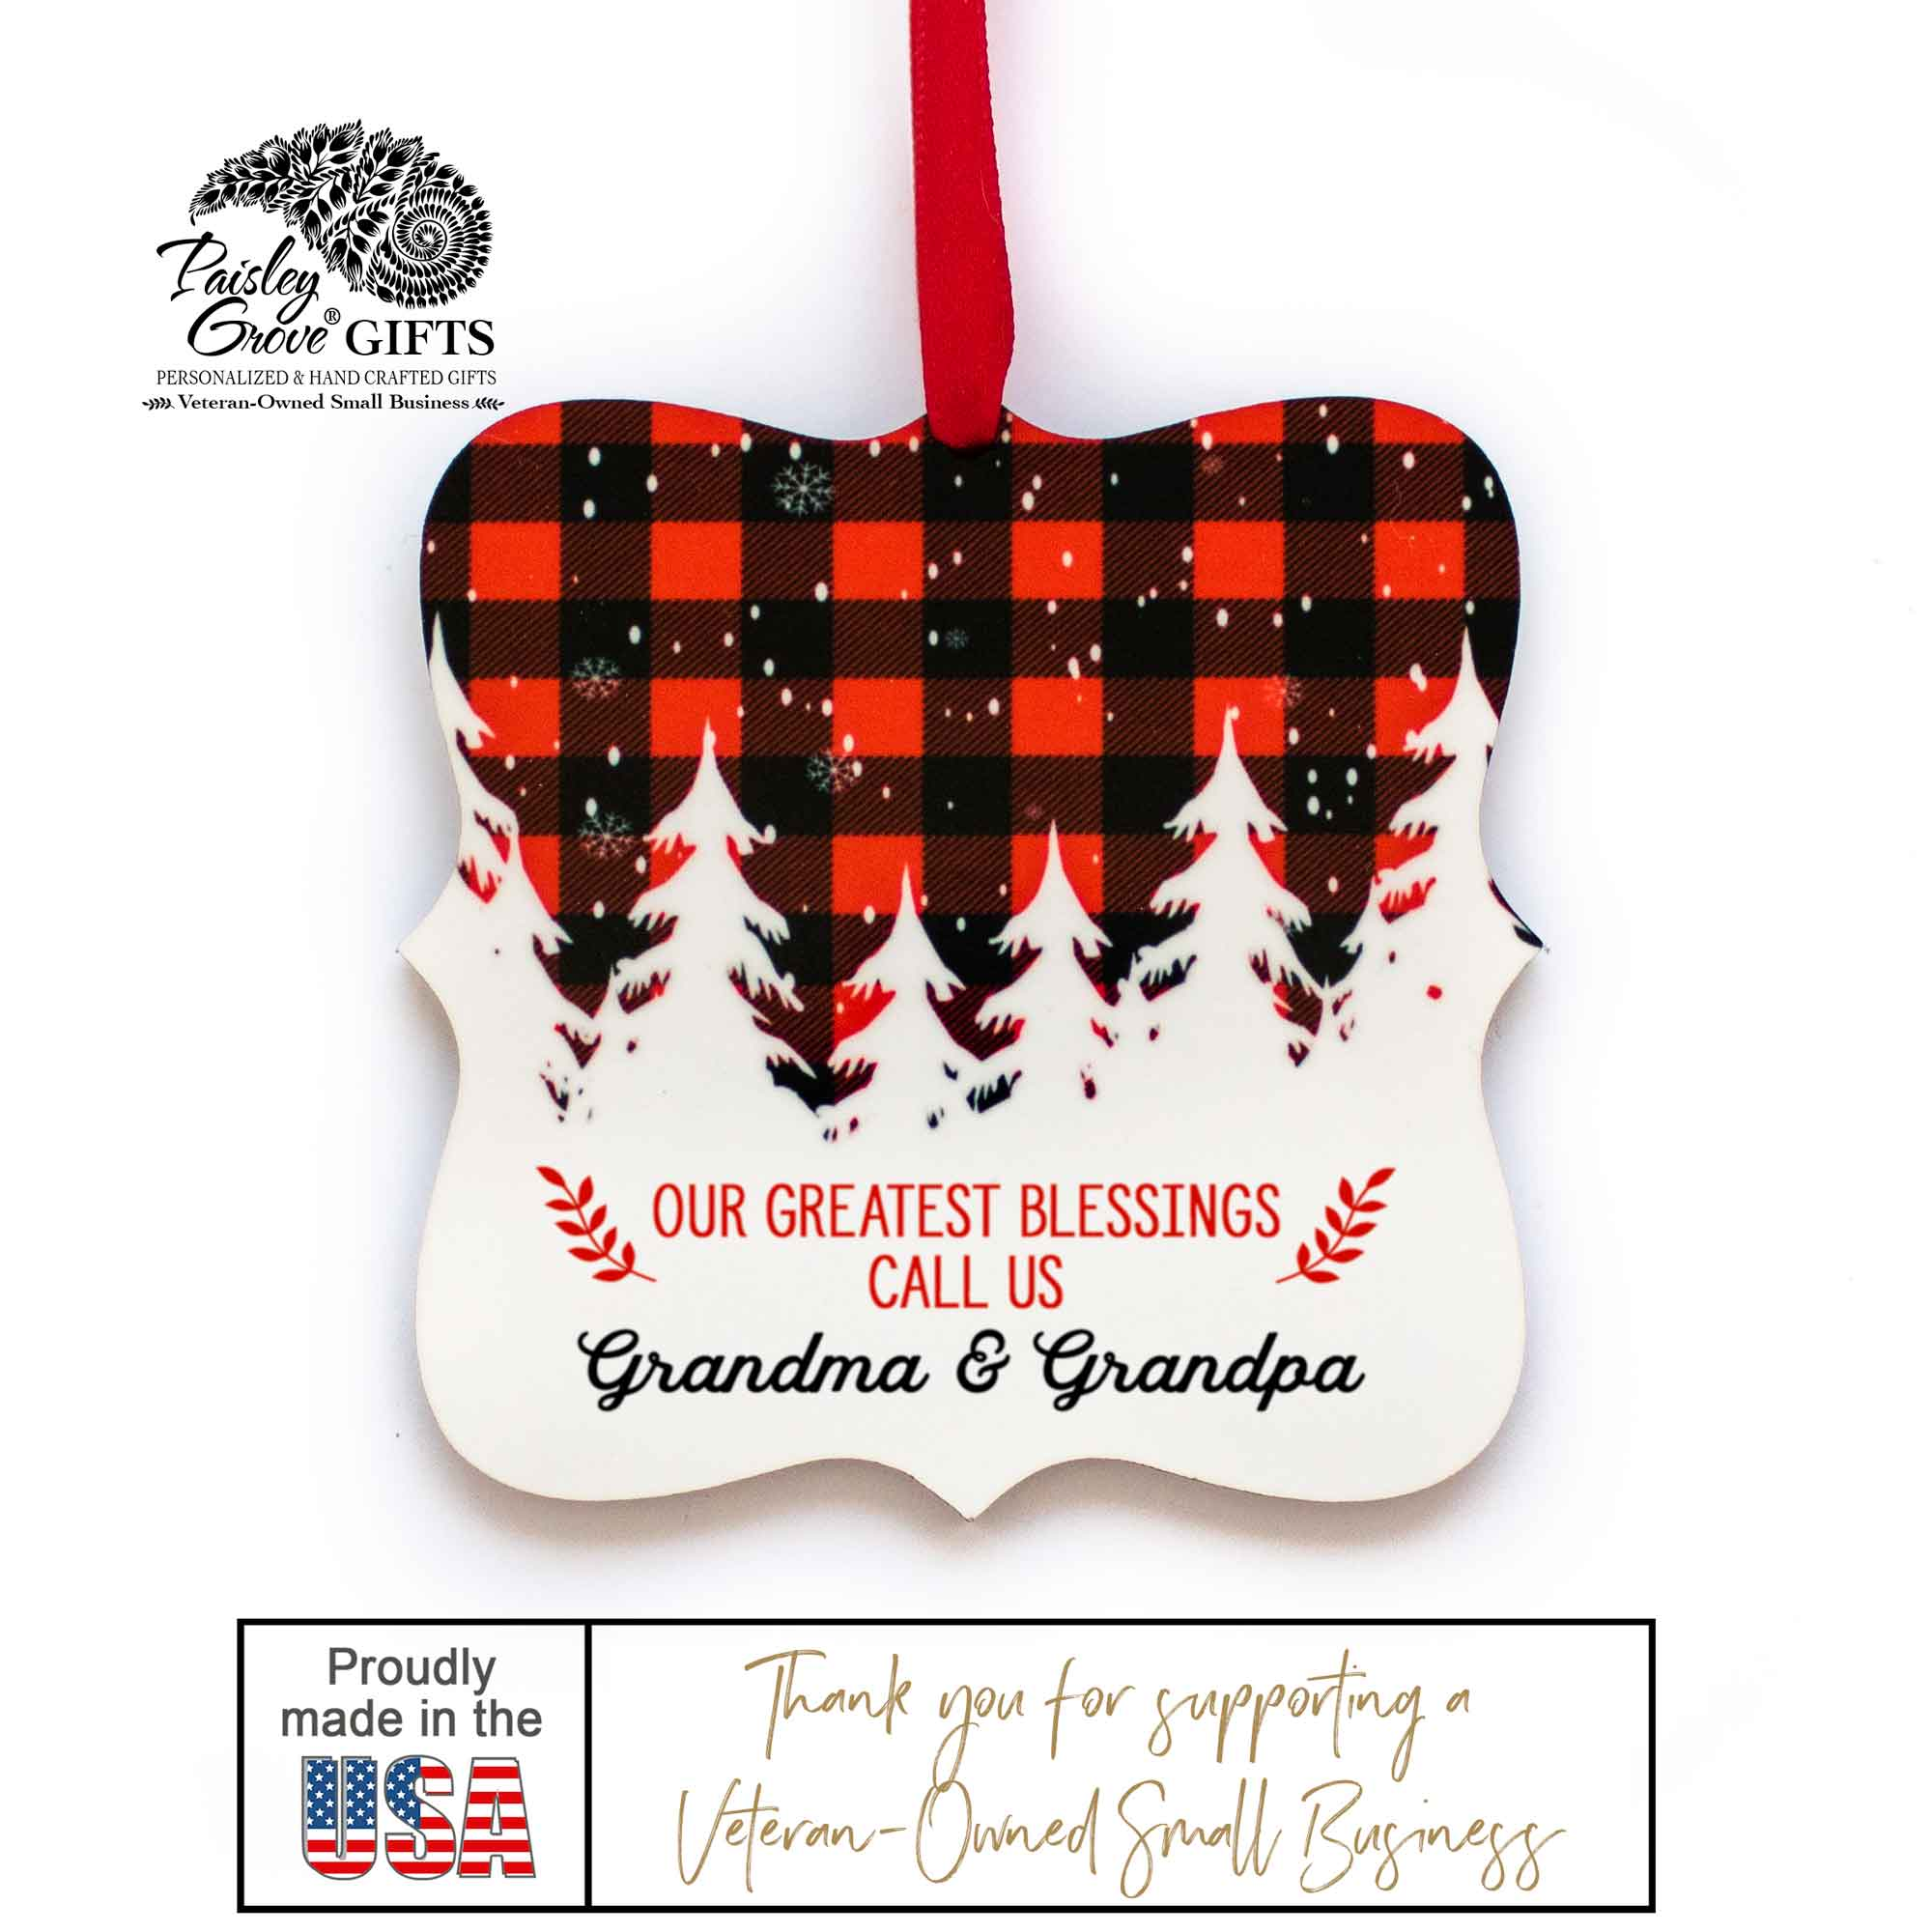 CopyrightPaisleyGroveGIFTS S502e5 Custom Grandma and Grandpa Christmas Ornament Gift Made in the USA